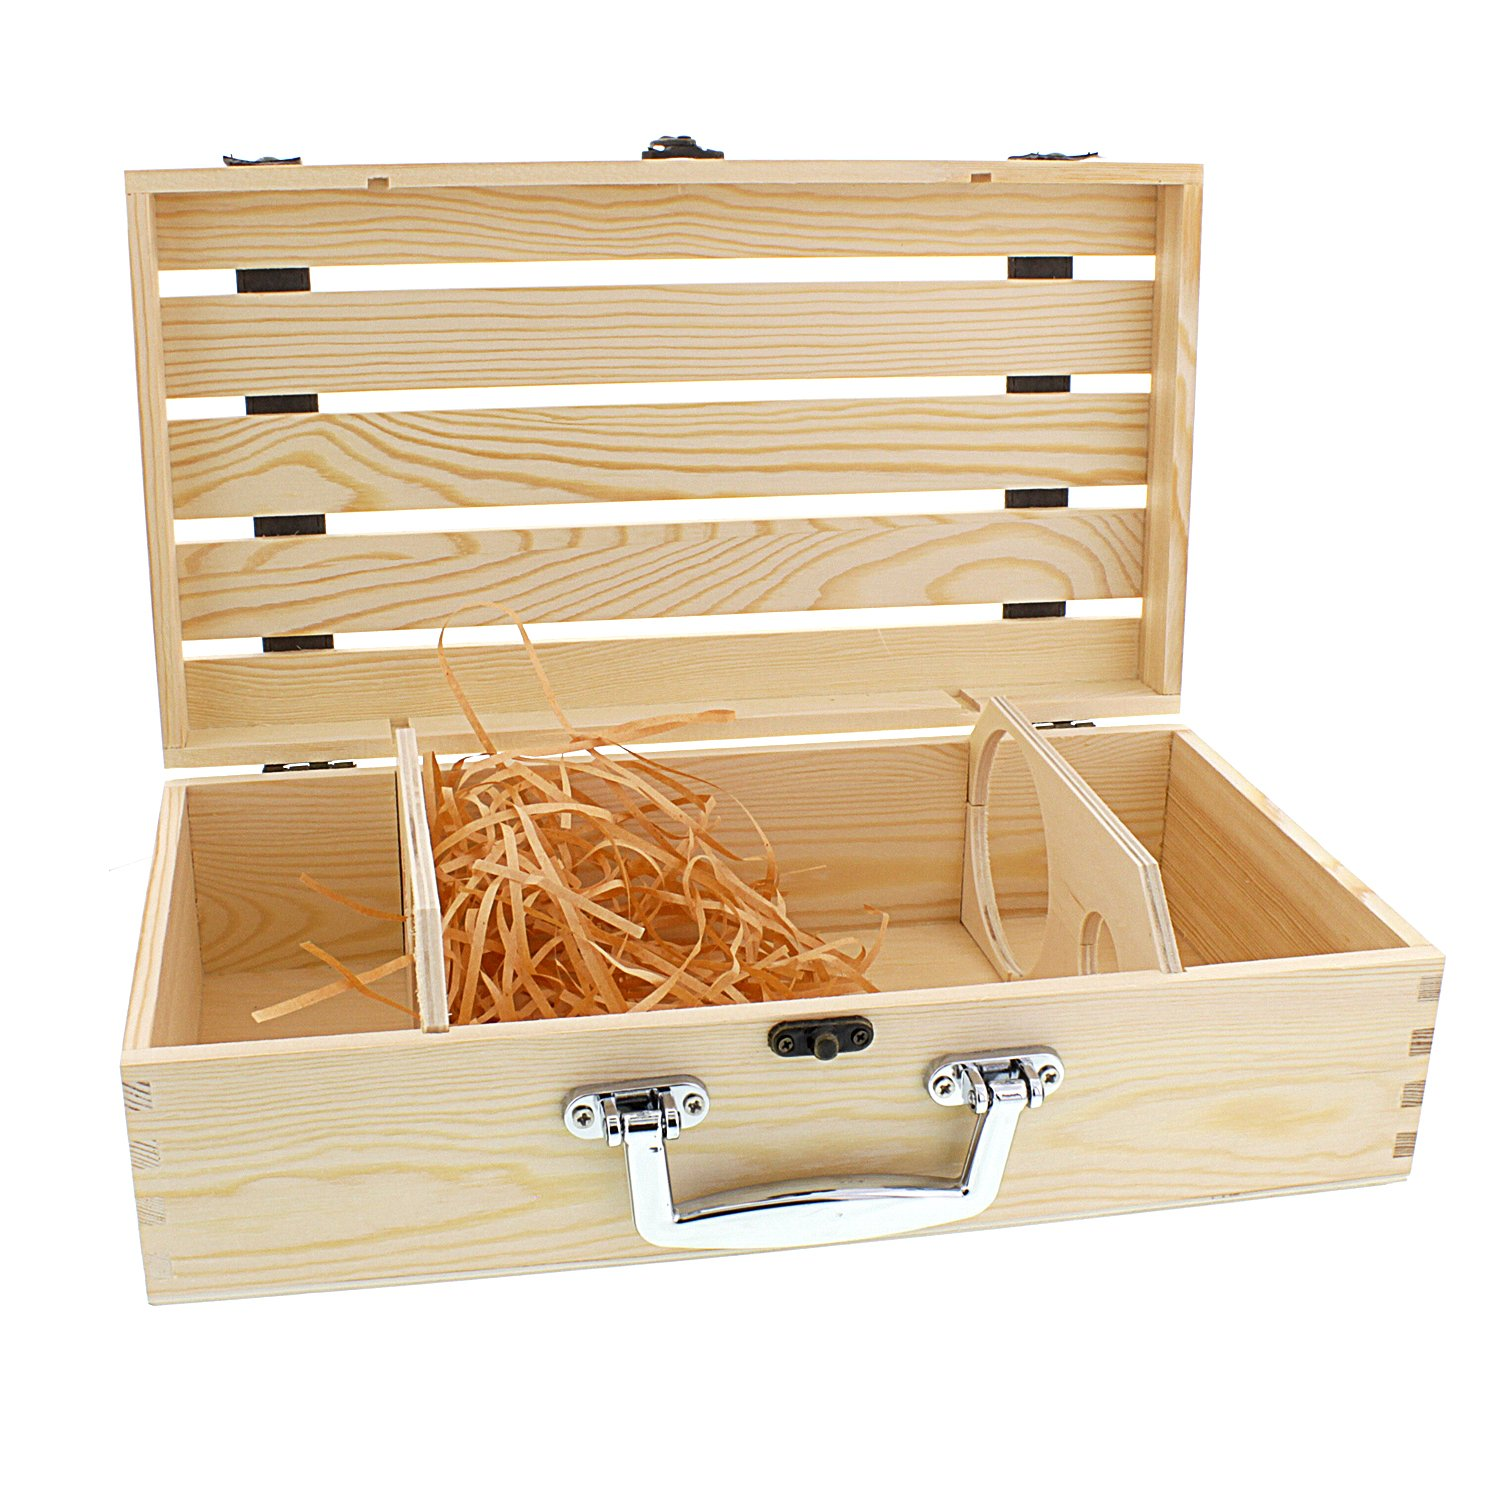 Cheftor Handmade Artisan Vineyard Design Natural Pine Wood Crate for Two Wine Bottles Travel Storage Gift Box Carrying Display Case